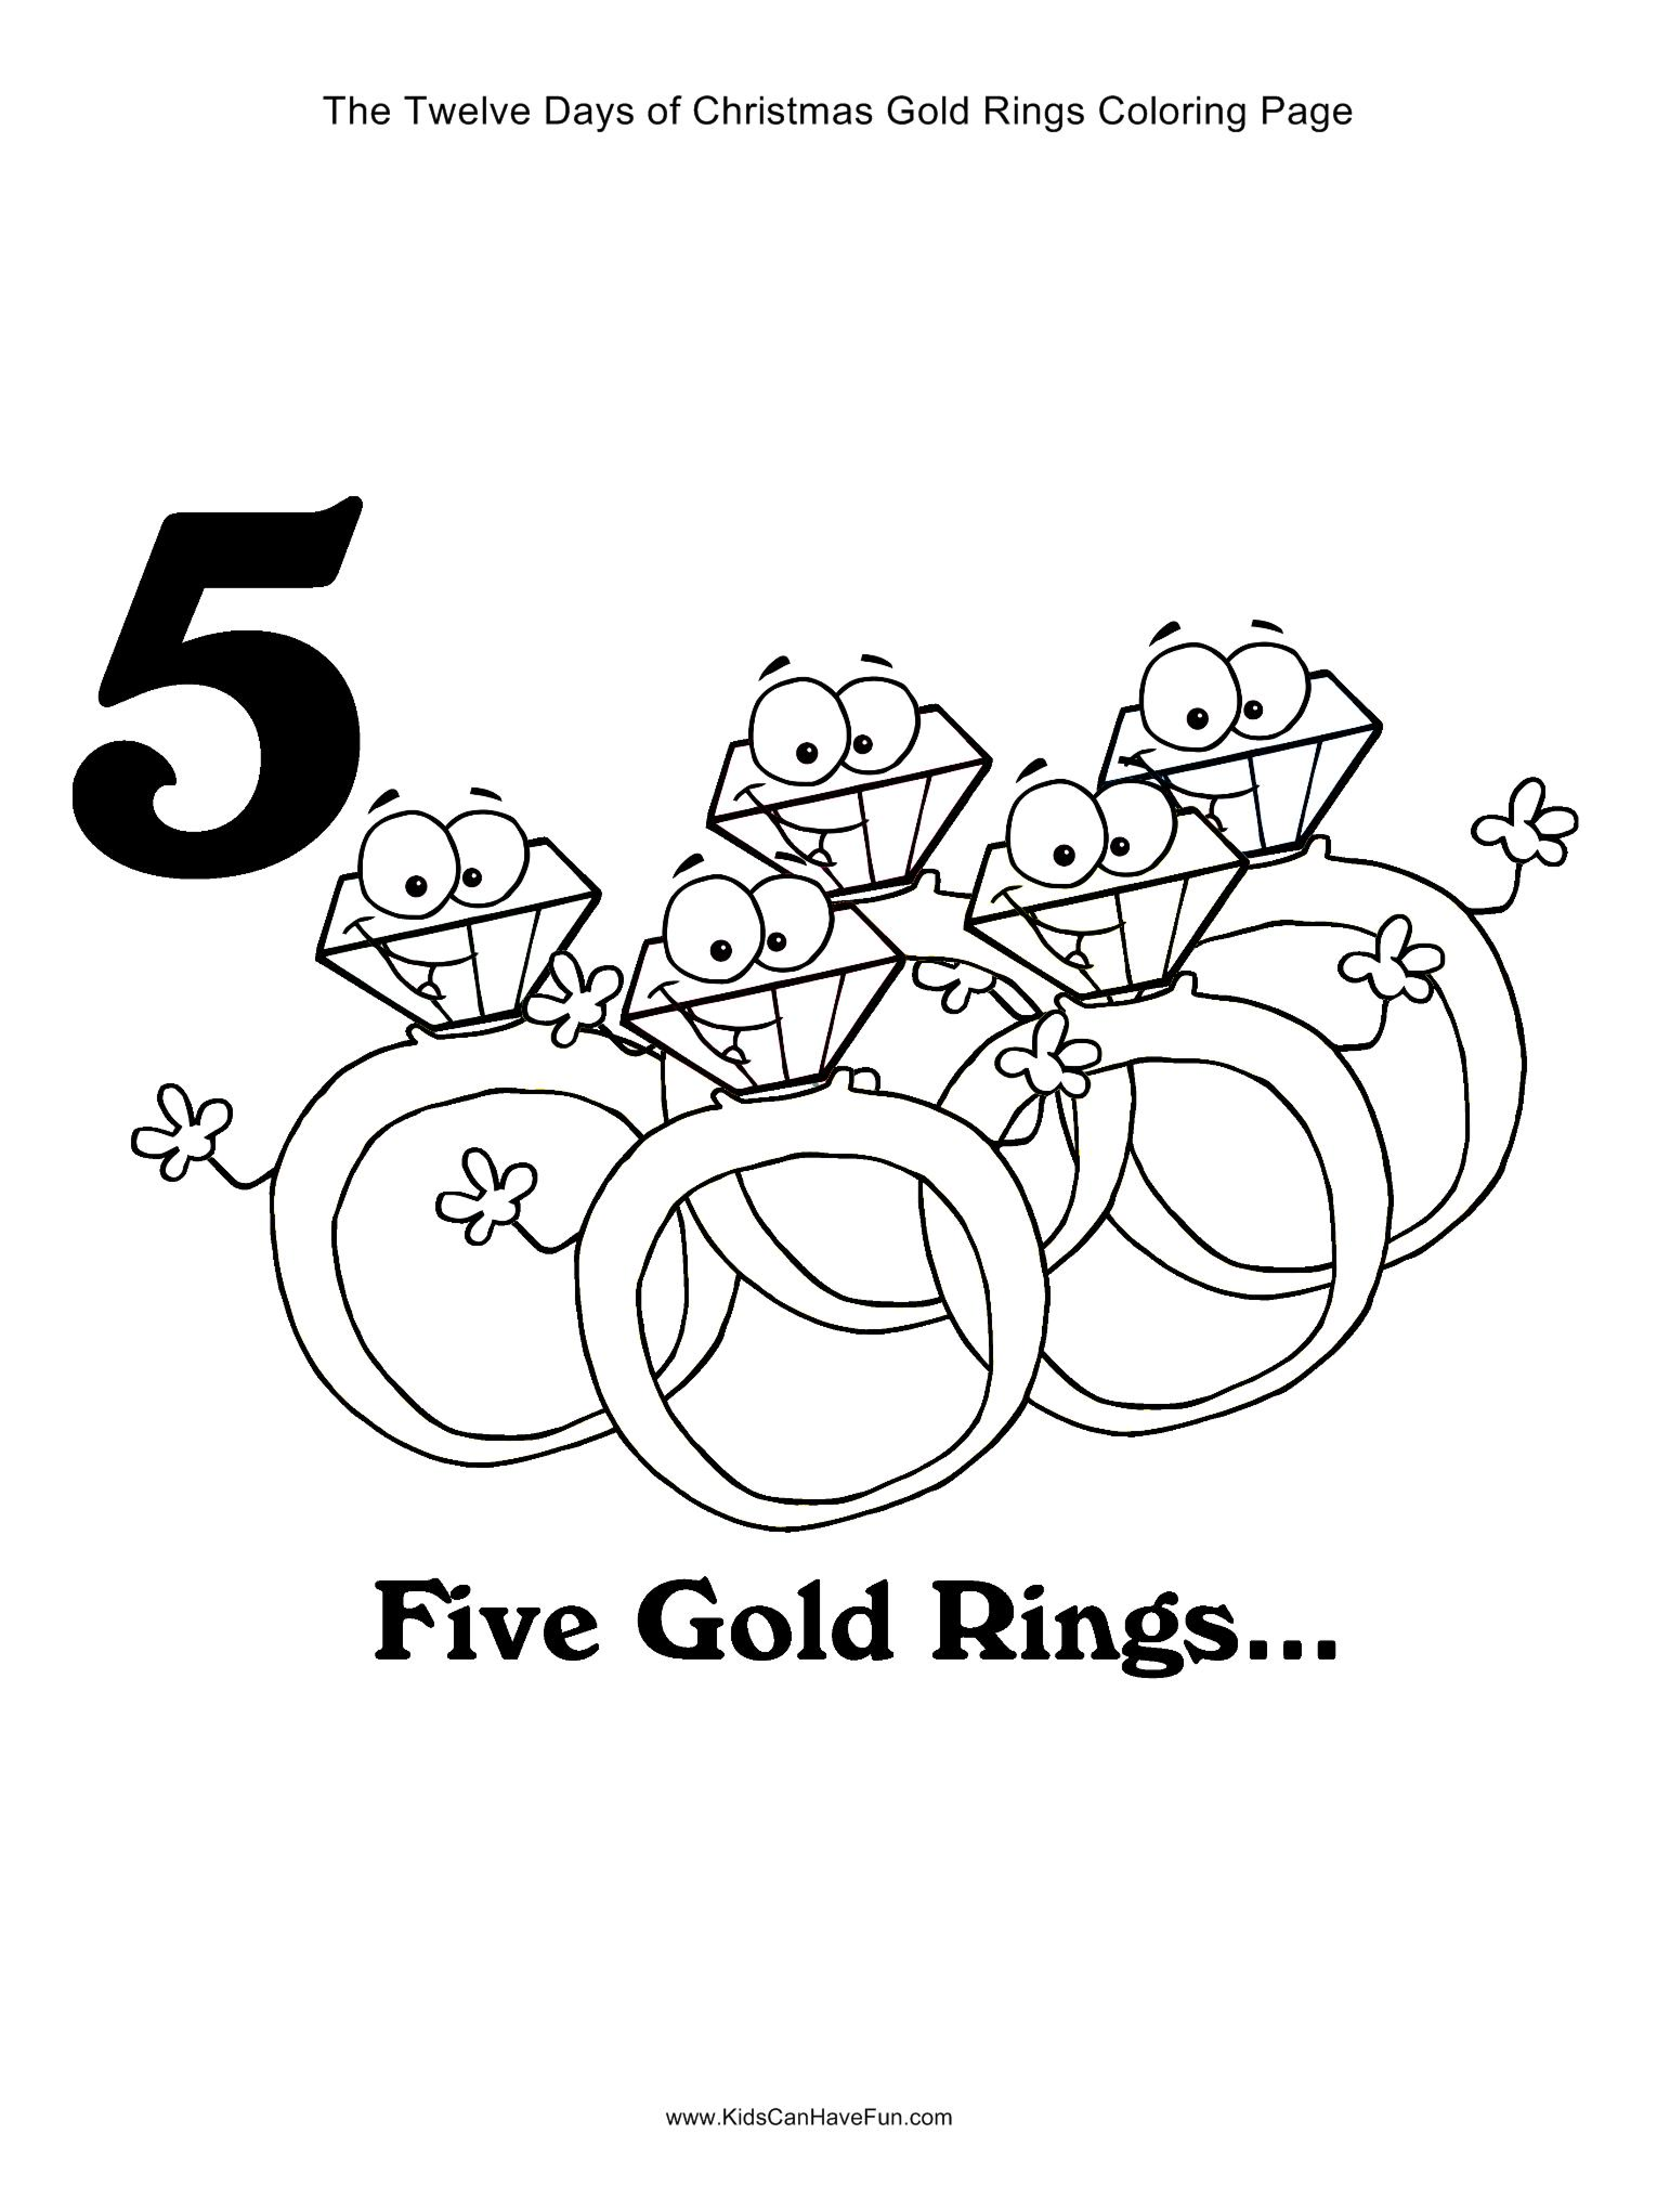 Pin On Twelve Days Of Christmas Printables Worksheets Coloring Games